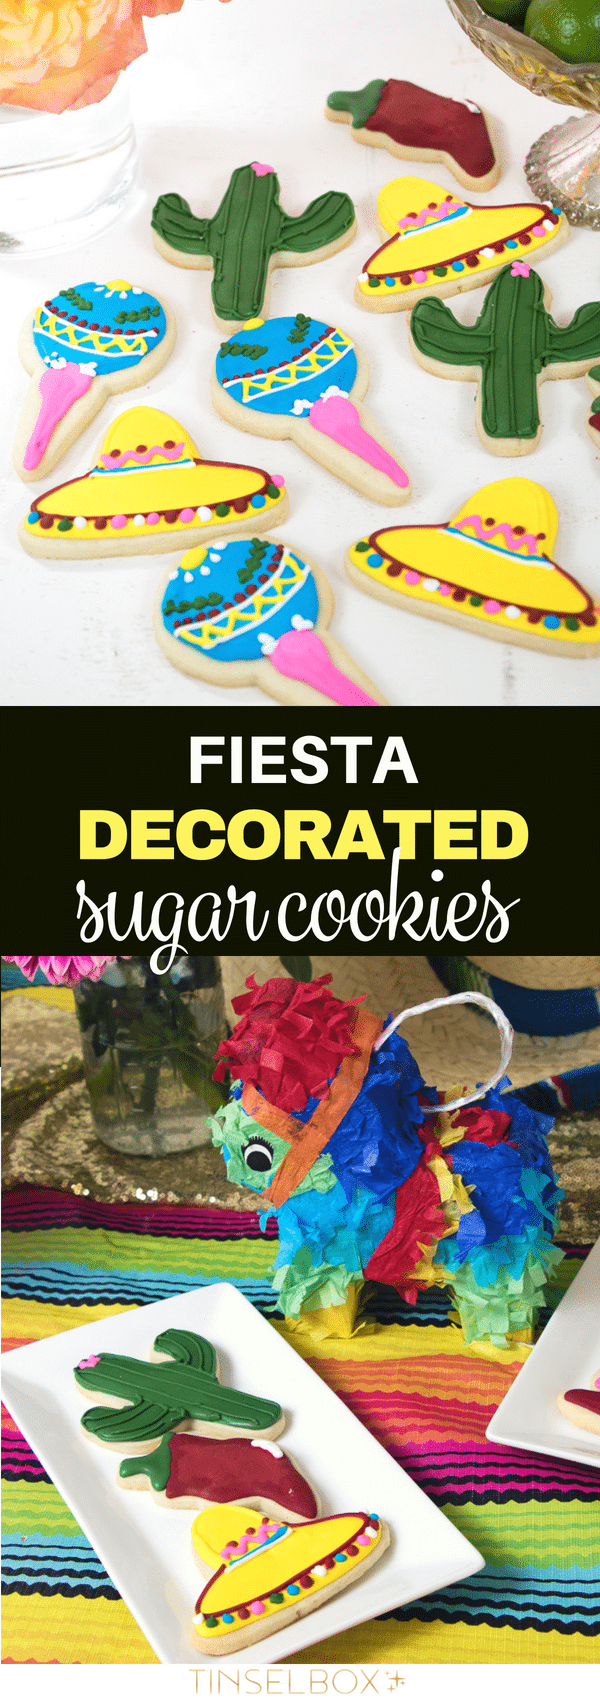 These fiesta inspired decorated sugar cookies are so delicious.  I LOVE mexico themed parties for Cinco De Mayo or just for fun.  Get the cookies and all the party DIY.  #decoratedsugarcookies #fiesta #mexico